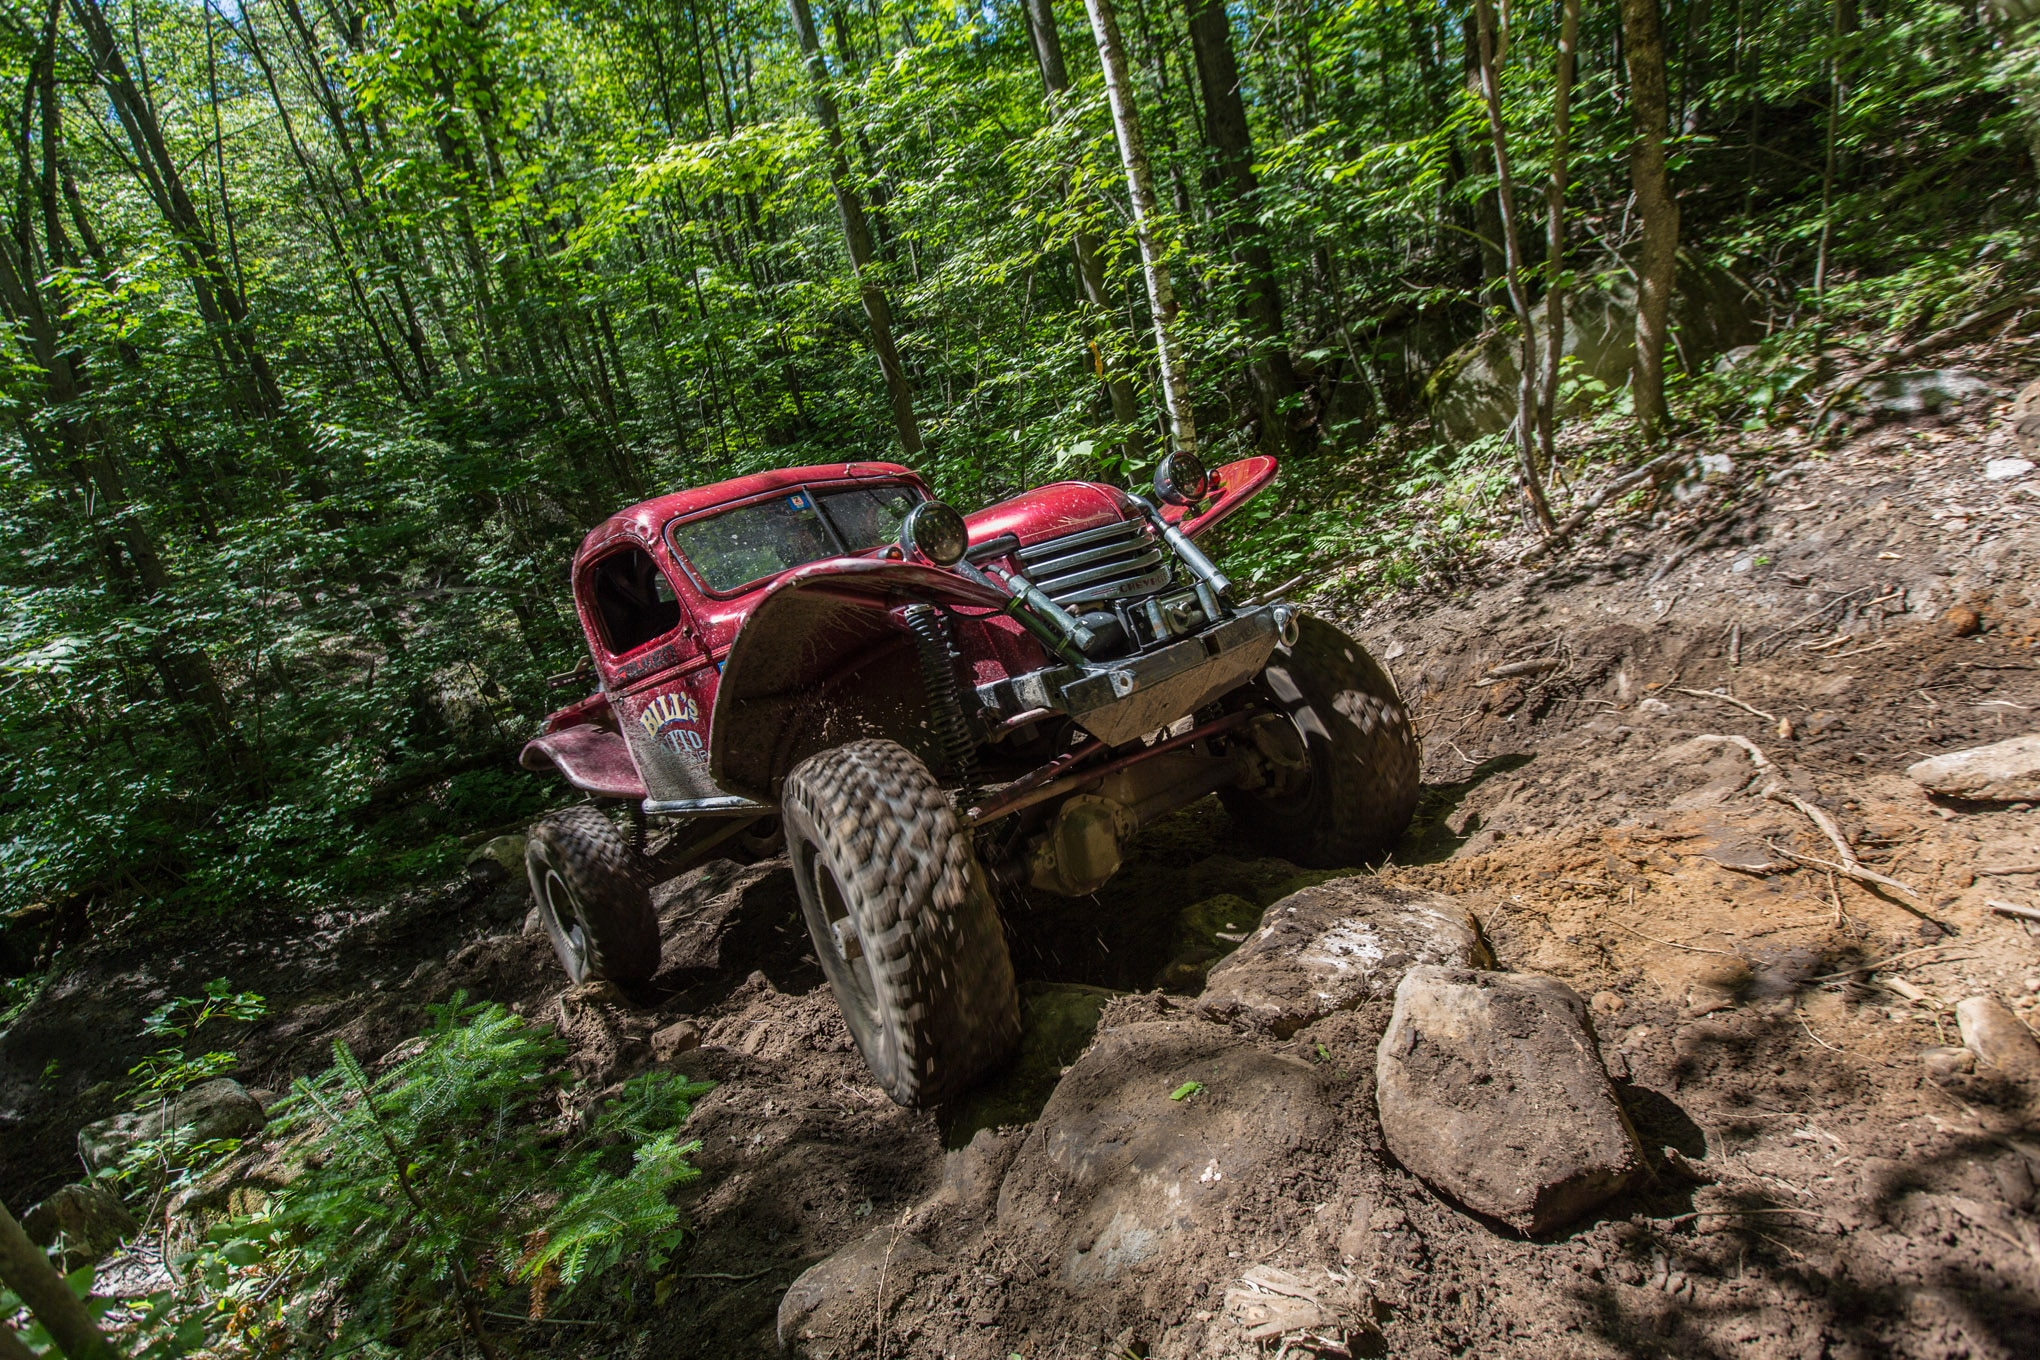 UA 2015 alumnus Bill Costa tipped us off to Jericho Mountain State Park. He and other members of North Woods Off Road have worked to build and maintain trails on the only public land open to wheeling in the Northeast.